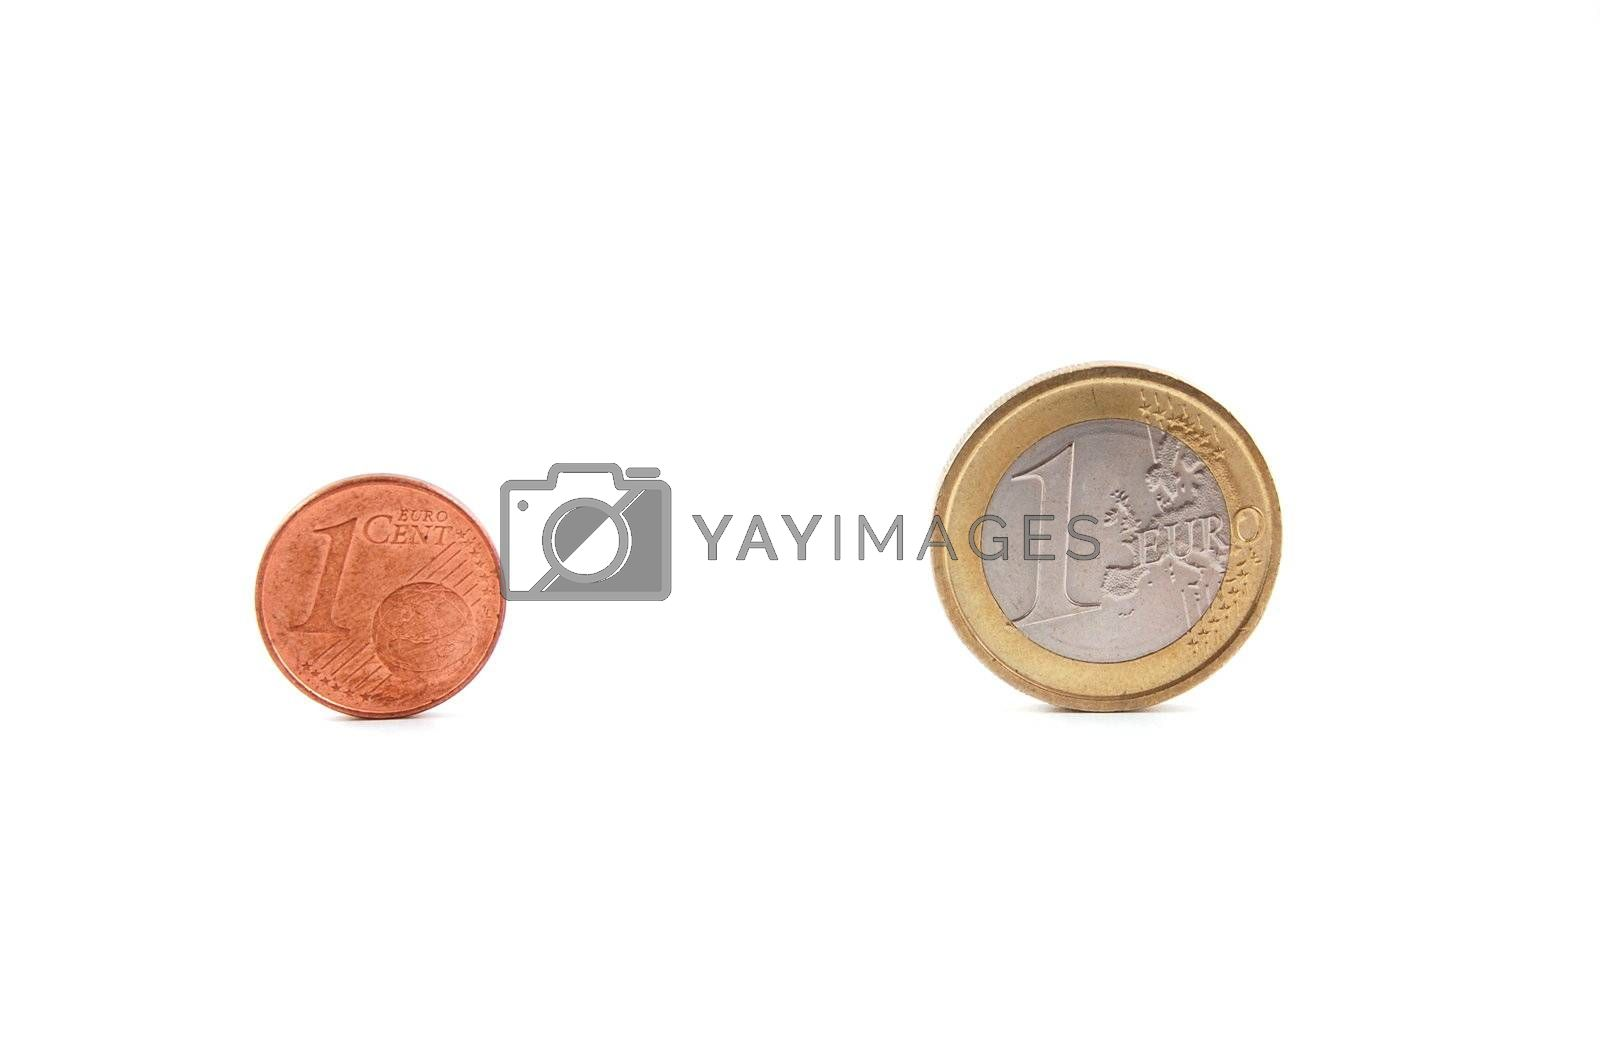 Some coins isolated on a white background.